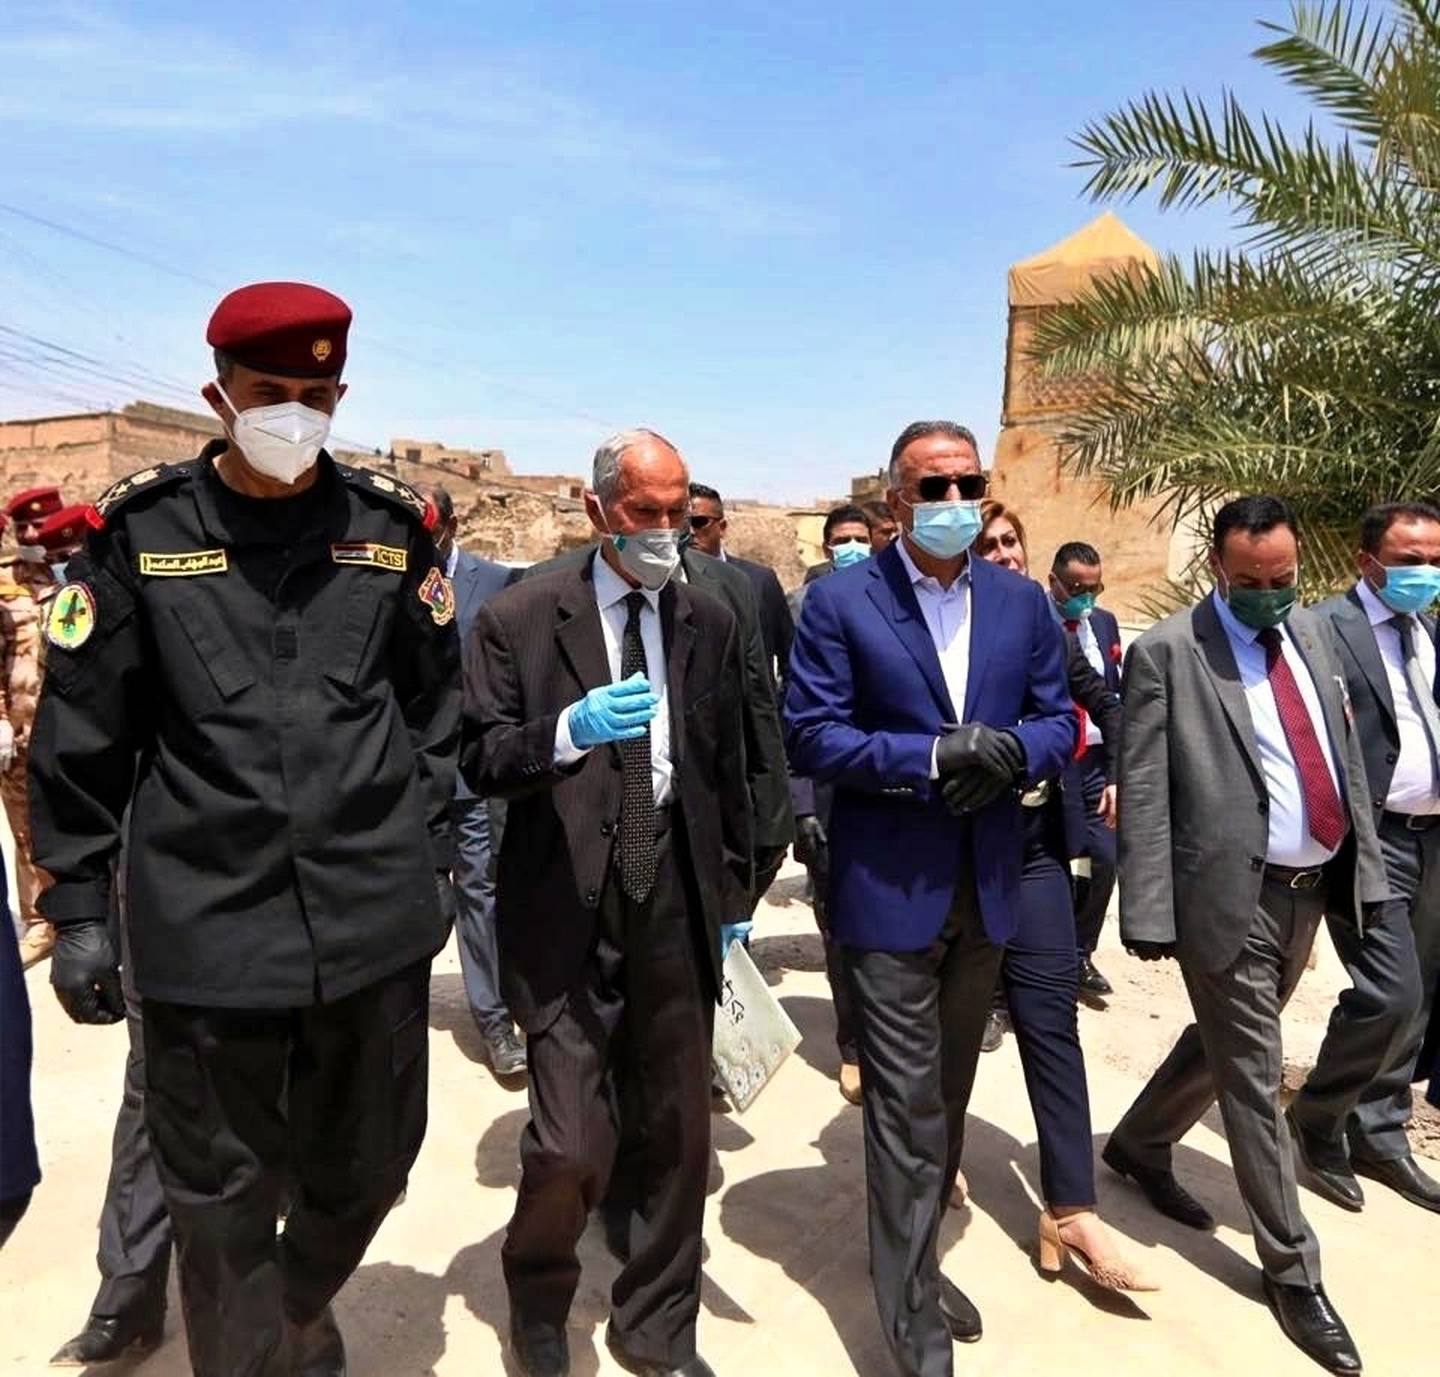 Iraqi Prime Minister Mustafa al-Kahdimi, center, visits the site of the Al–Nuri mosque, which was destroyed by Islamic State militants, during his visit to Mosul, Iraq, Wednesday, June 10, 2020.